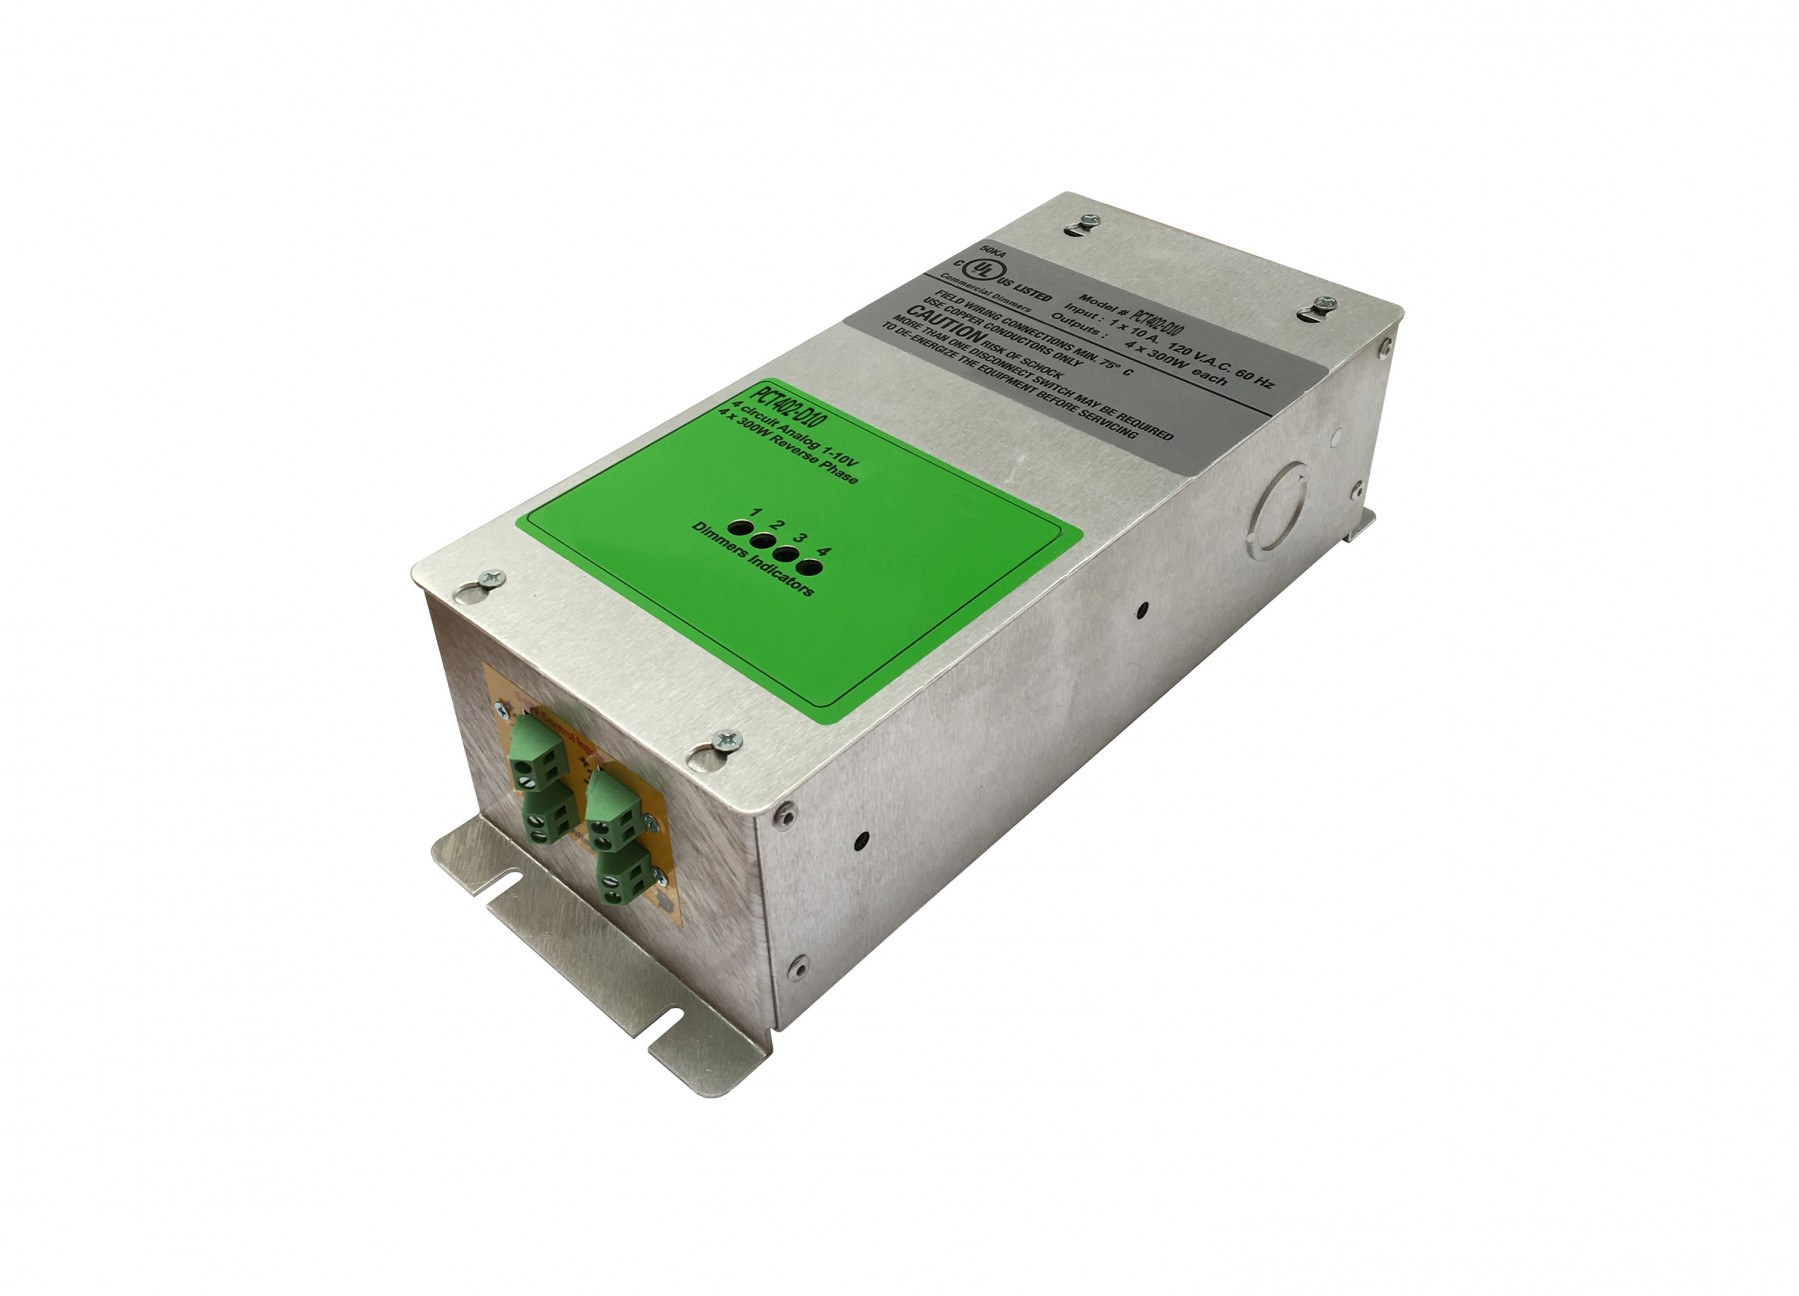 Liton Pct402 D10 Elv 0 10v To Dimming Power Pack 120vac Disconnect Wiring Prev